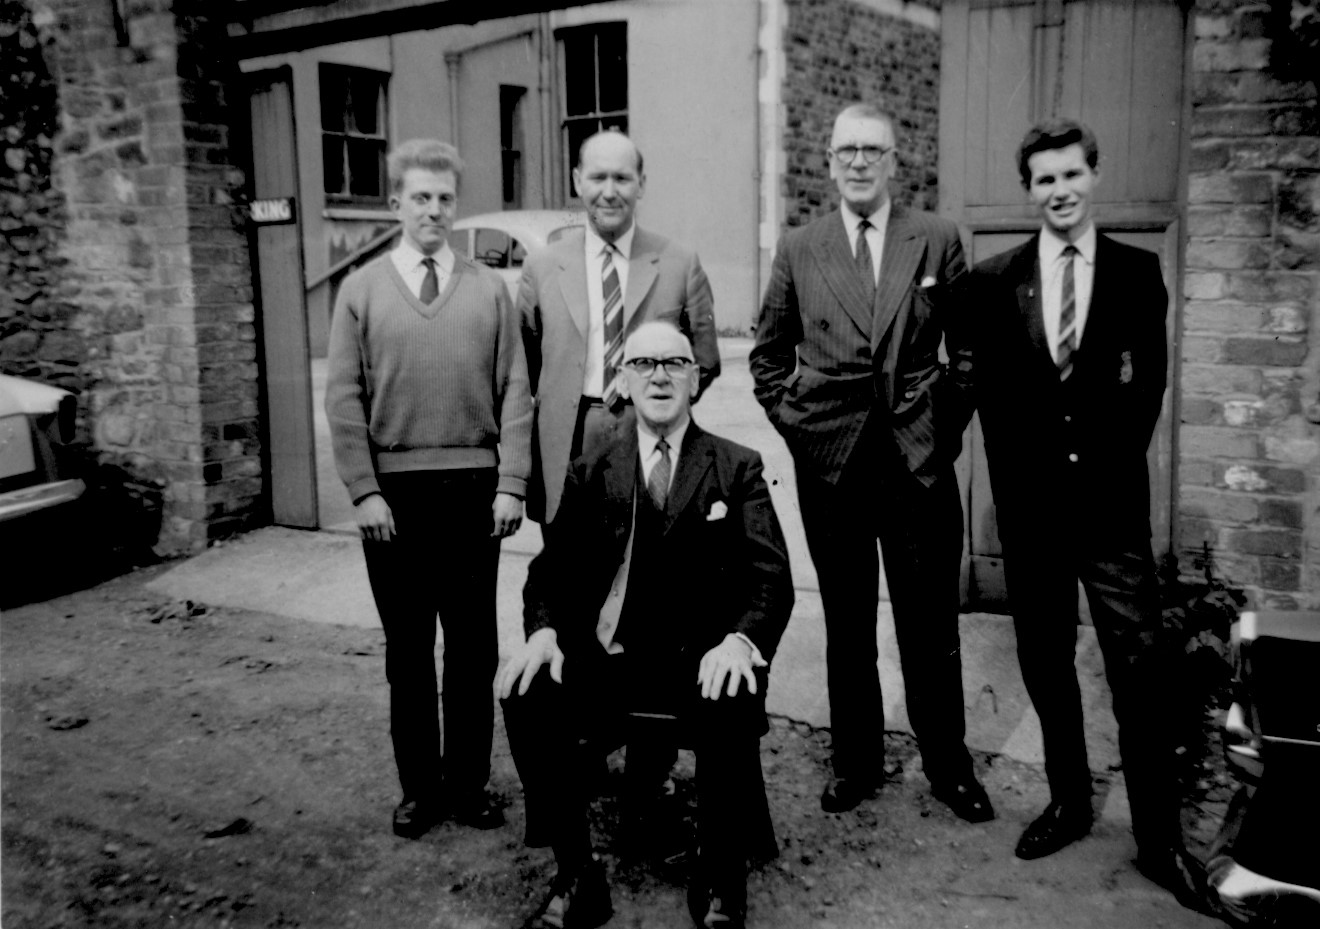 Cardiff business TB Davies celebrates 75 years of serving Wales